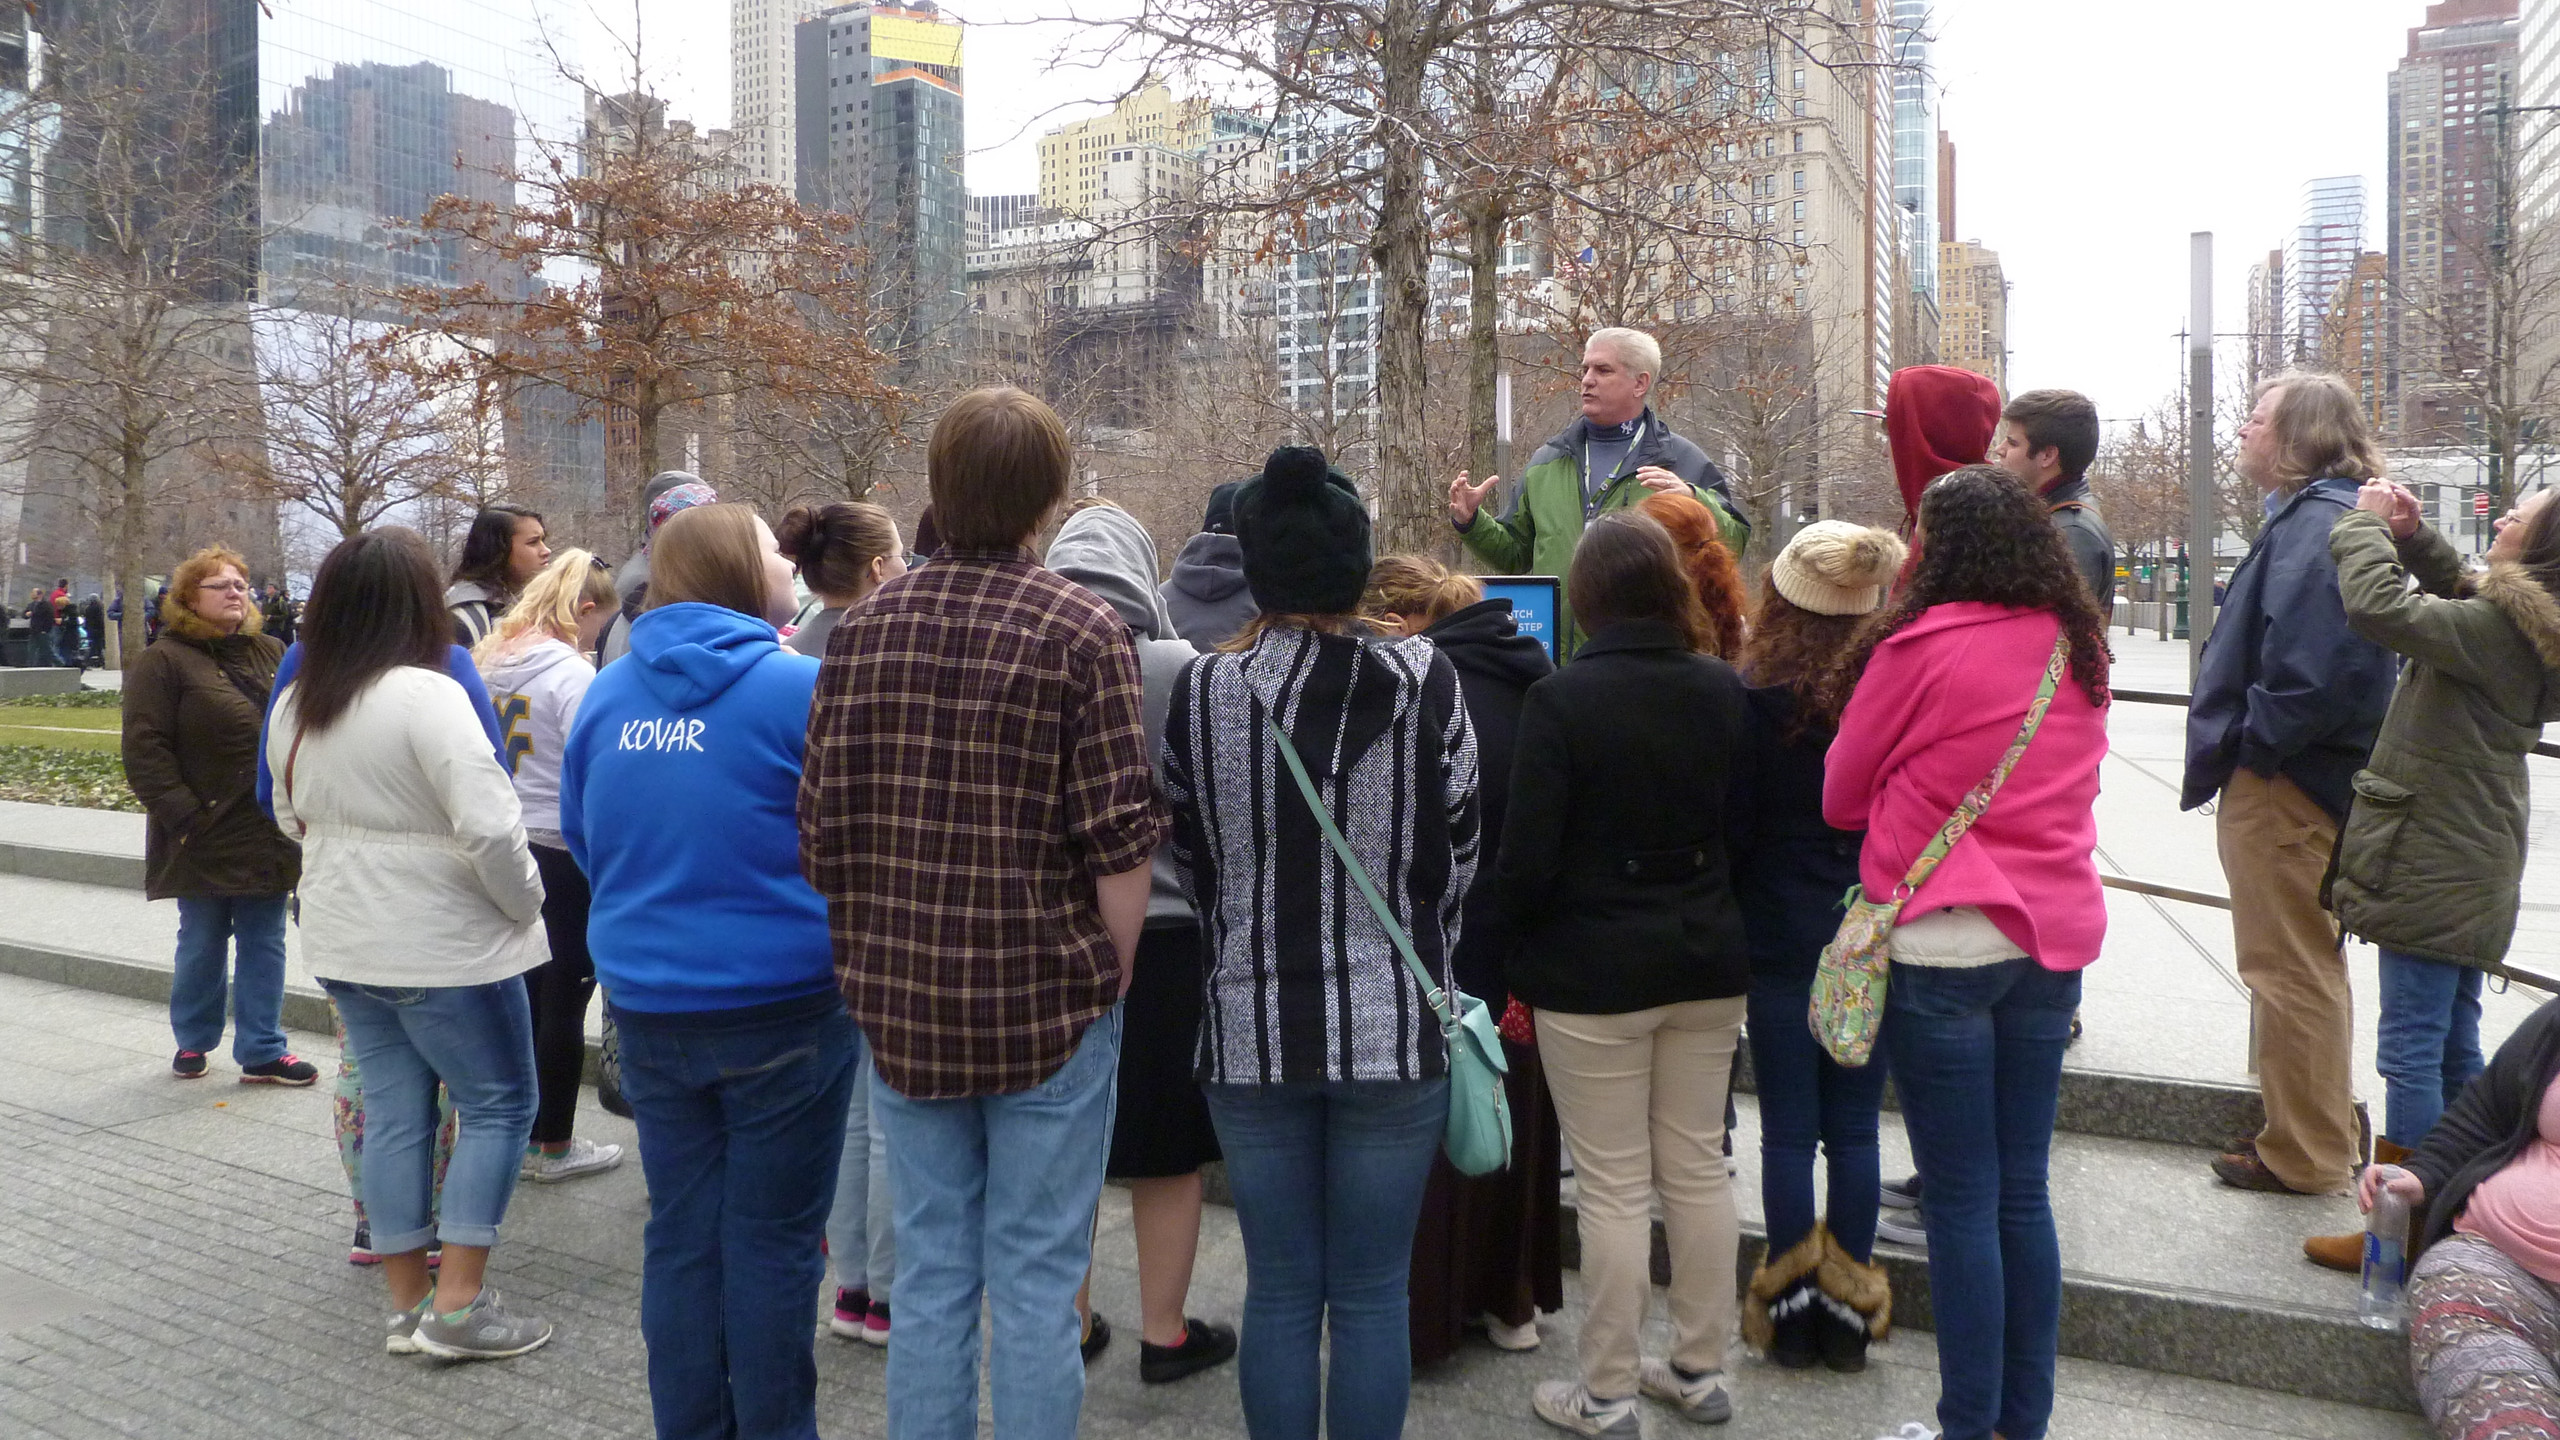 Our tour guide telling students what it was like to be in NYC on 9/11/01